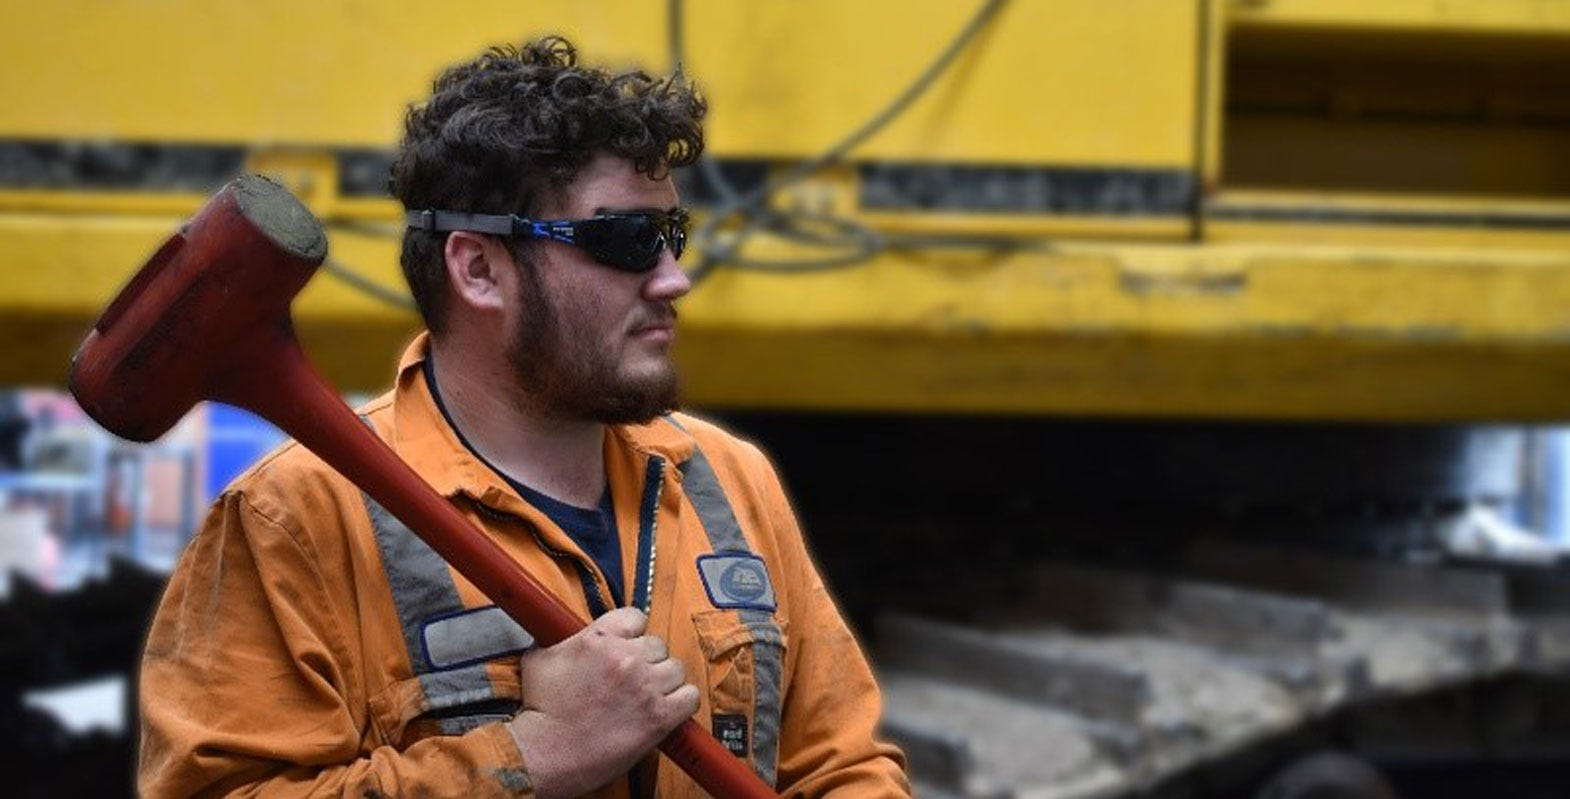 What kind of safety glasses do I need?